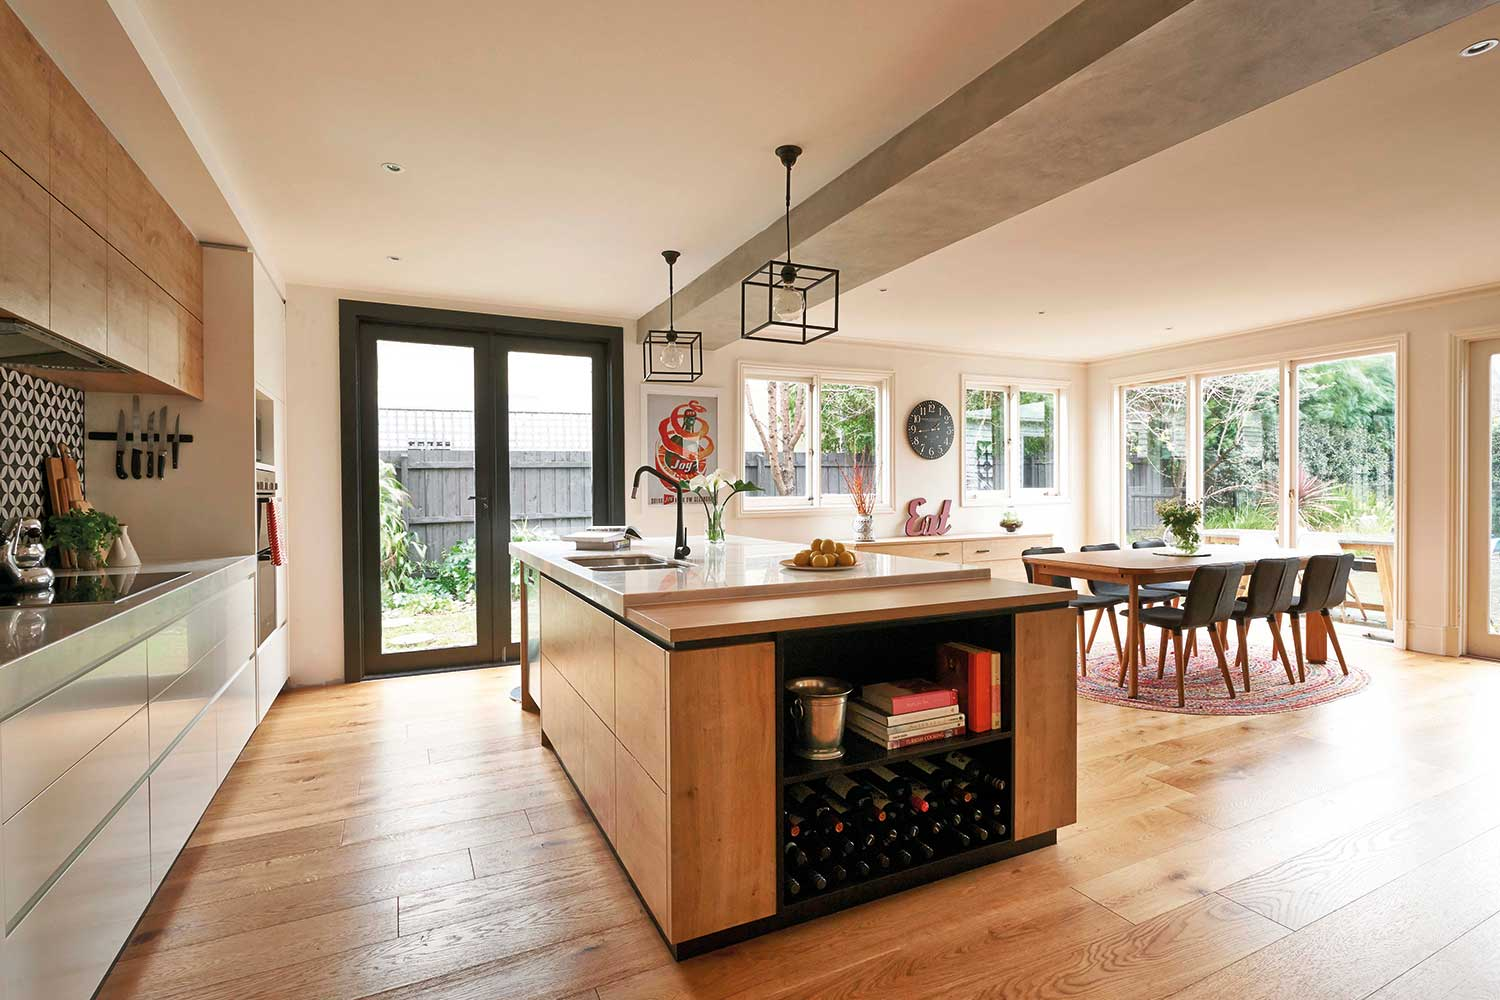 10 of our favourite kitchens with timber floorboards ...